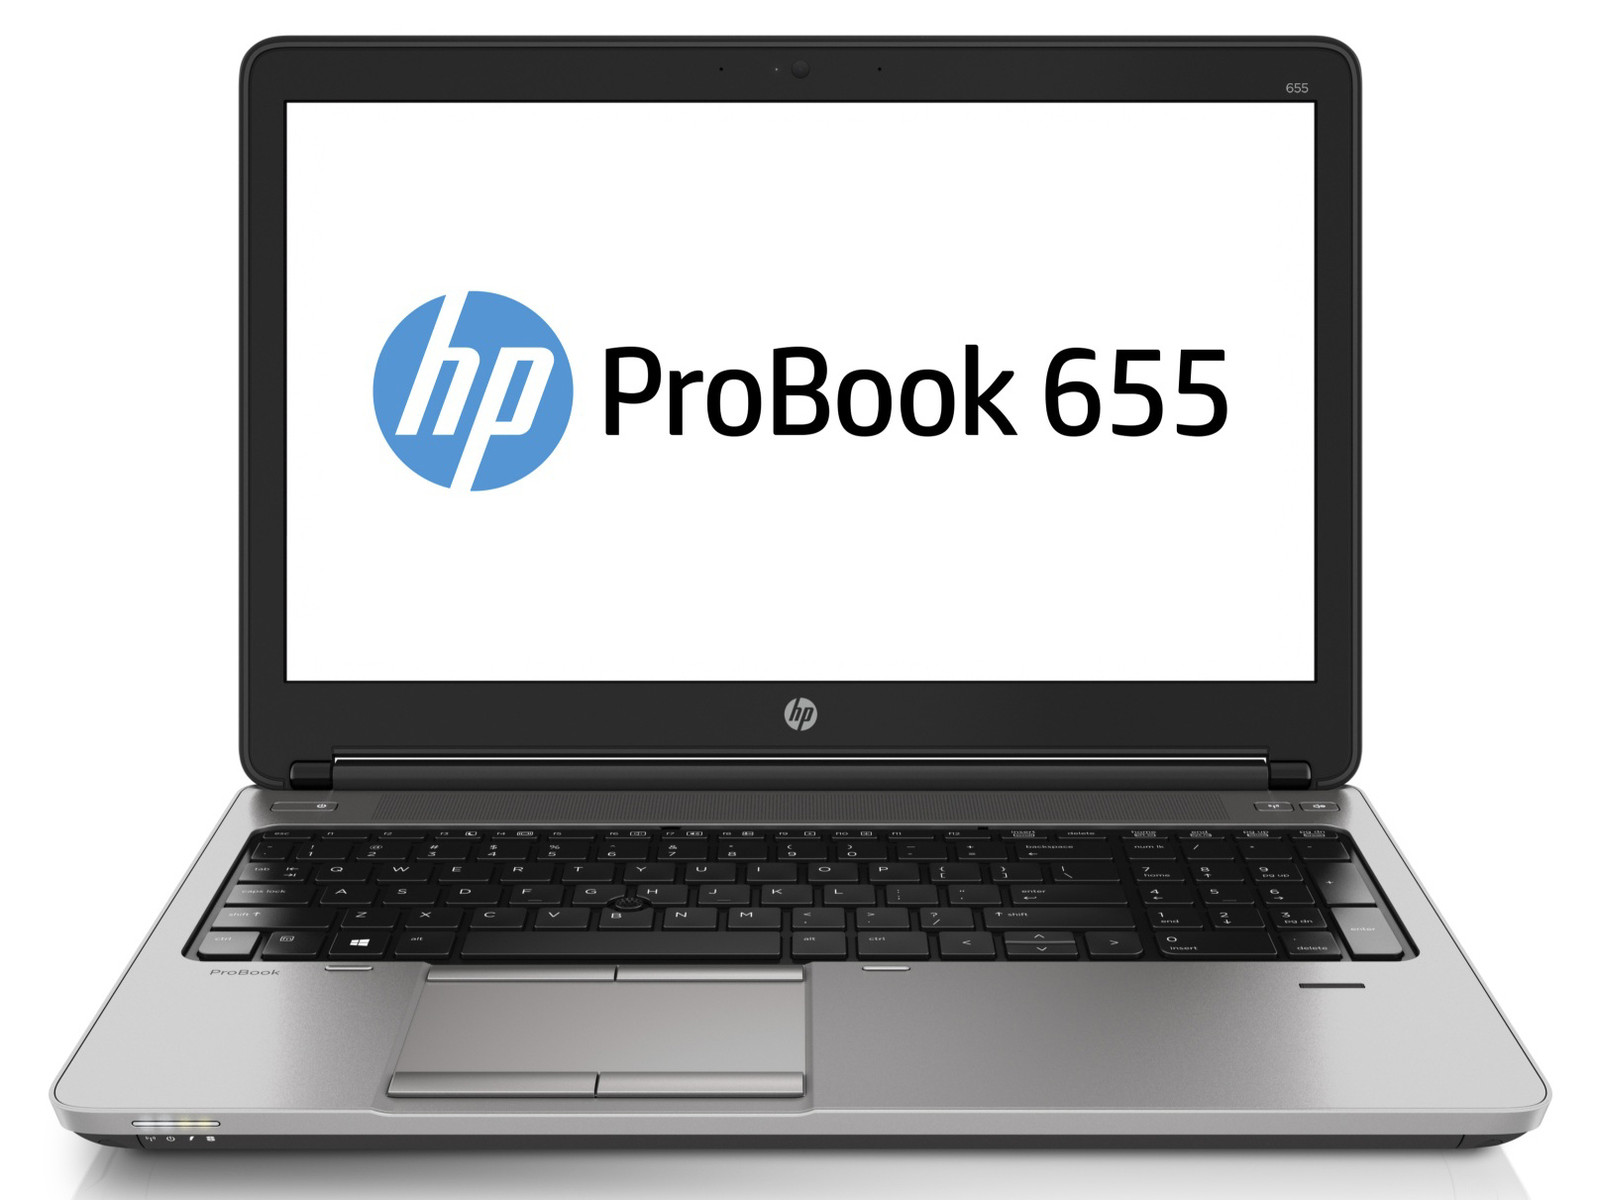 devicesa-refurbished-hp-elitebook-655g1-Laptop